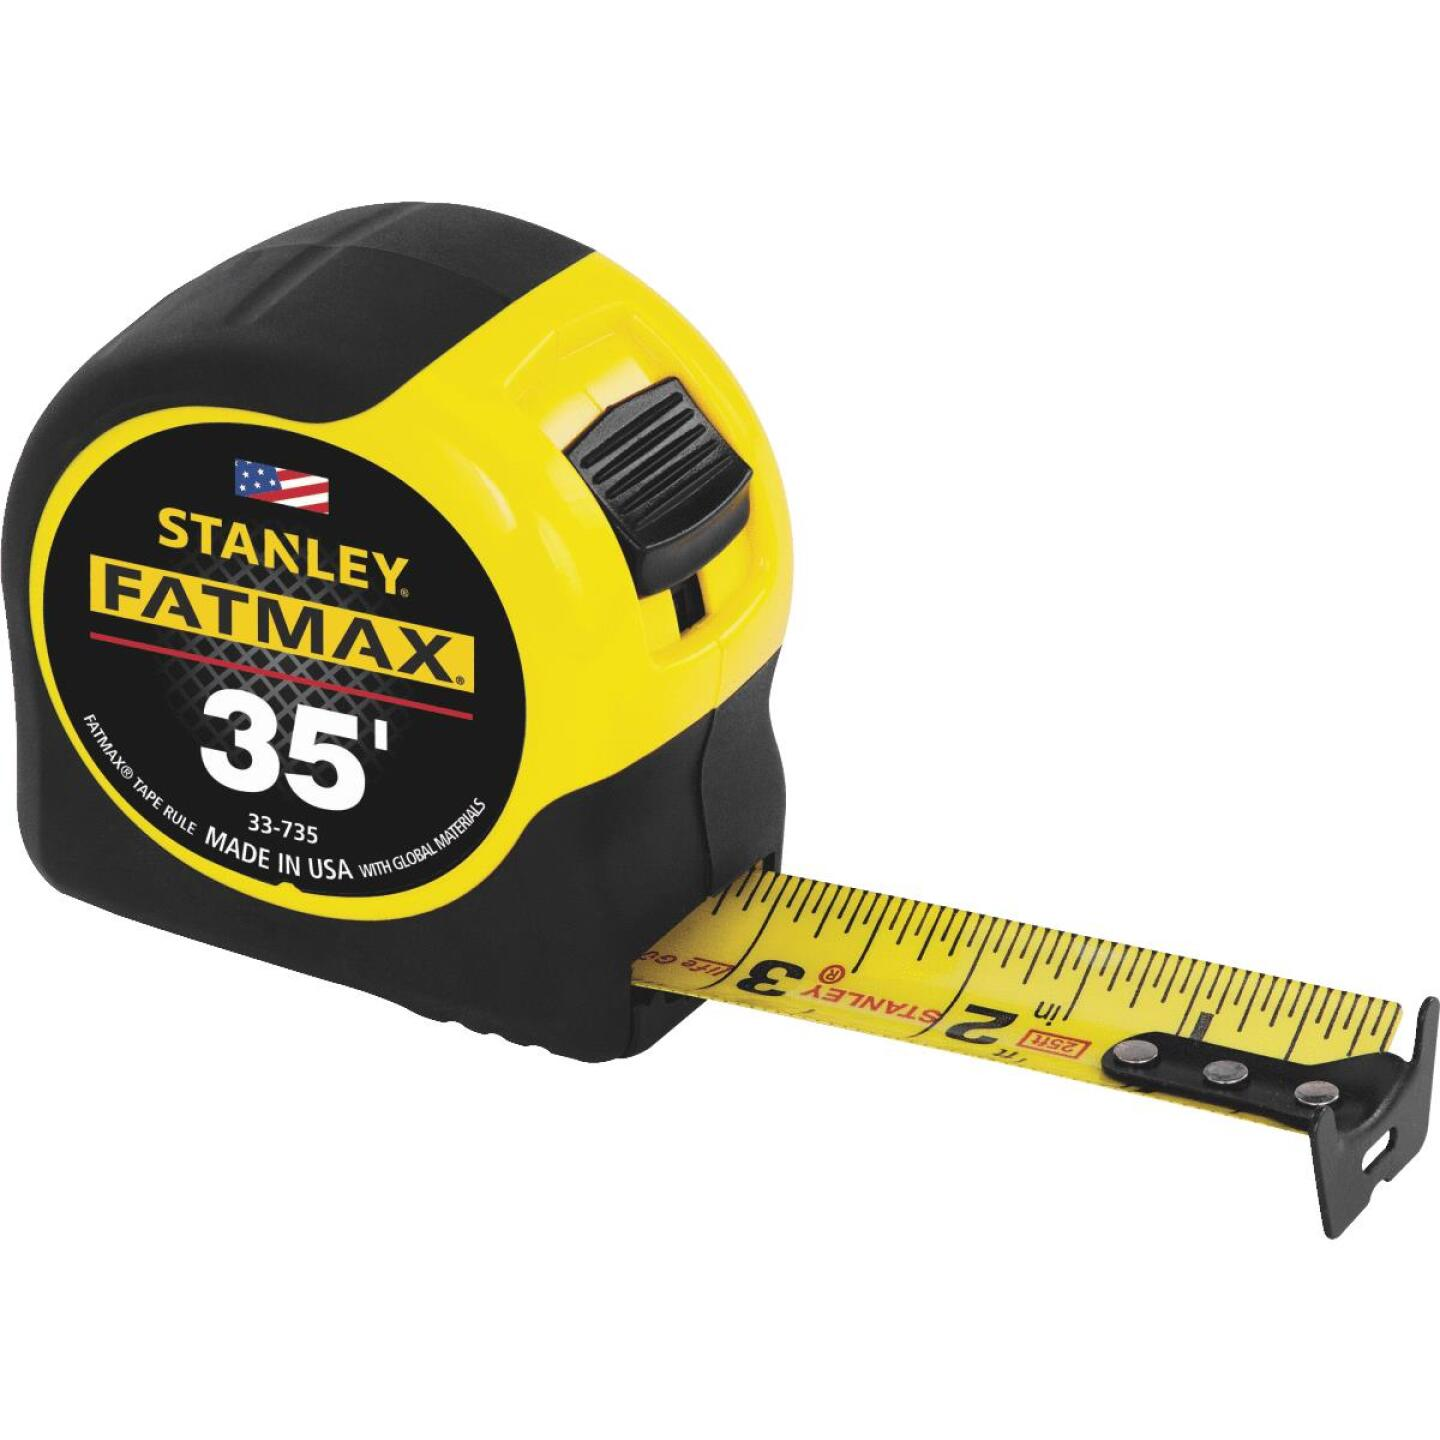 Stanley FatMax 35 Ft. Tape Measure with 11 Ft. Standout Image 1